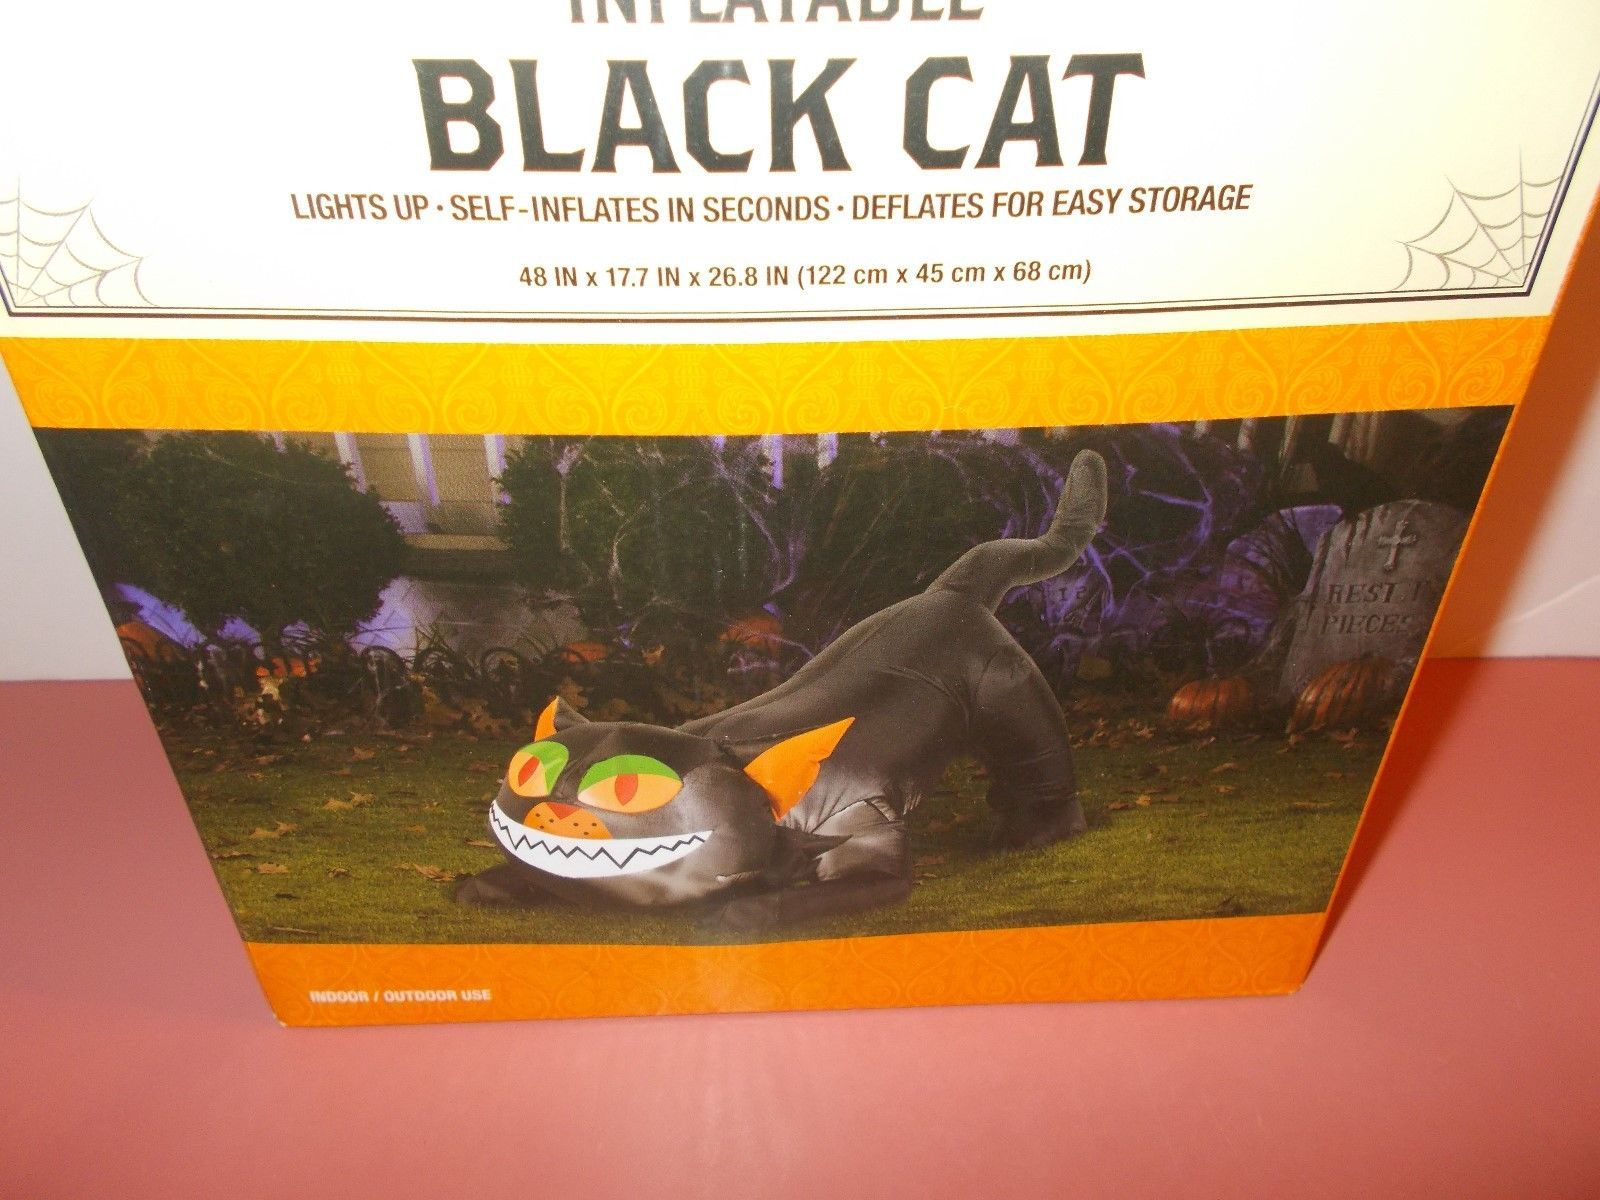 Airblown Inflatable 4 Ft Black Cat Up Lights and 21 similar